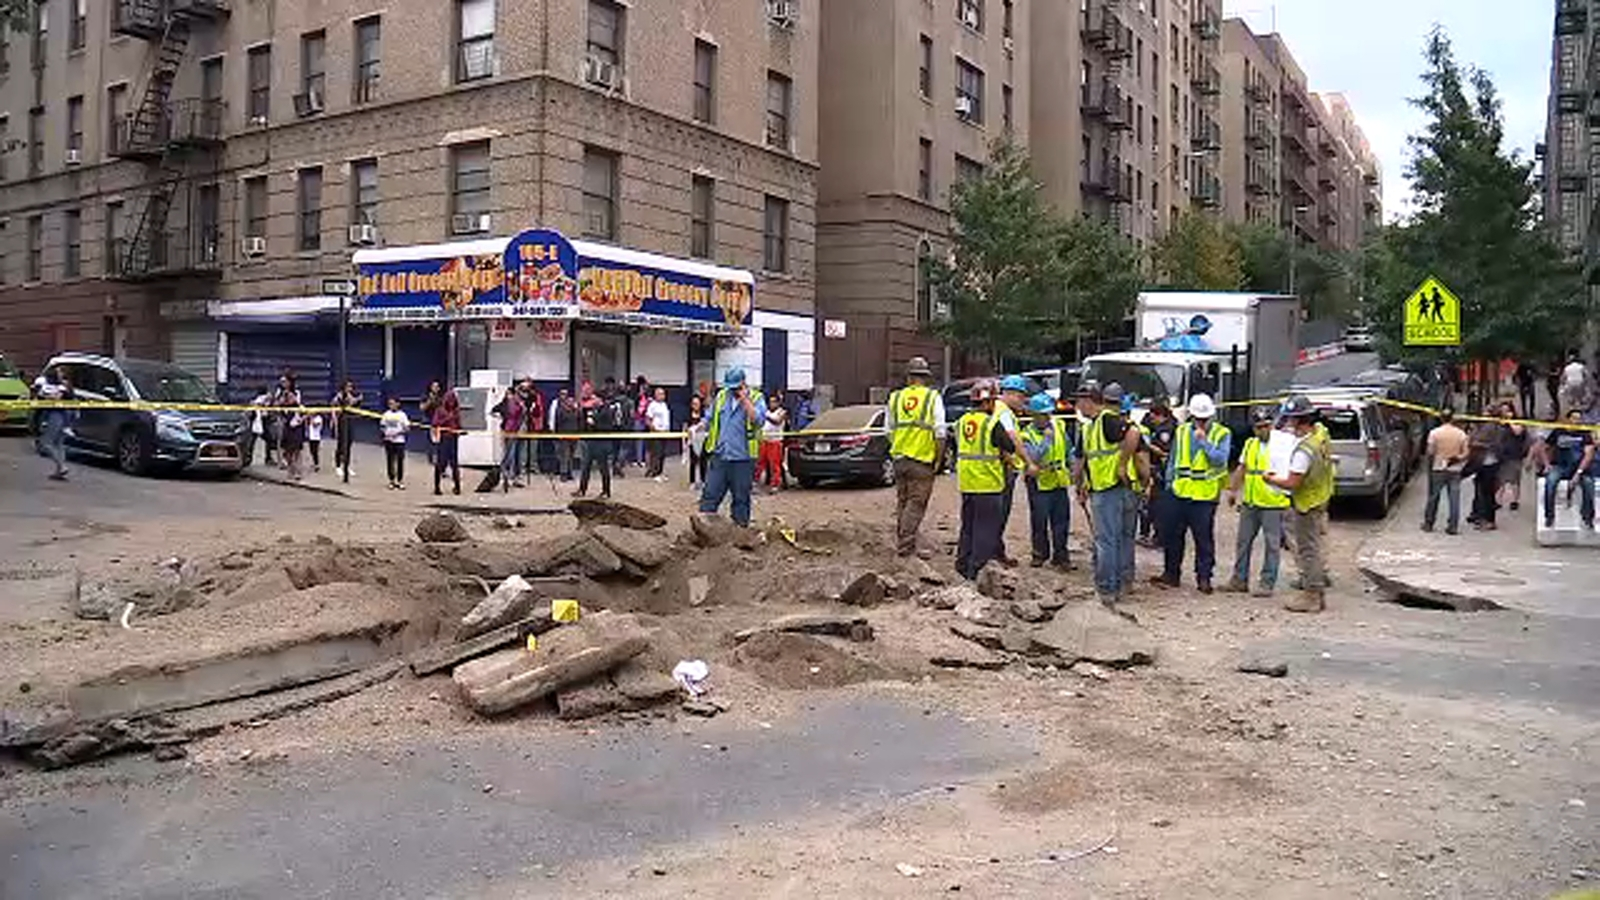 Explosion at intersection caused by gas line in Bronx